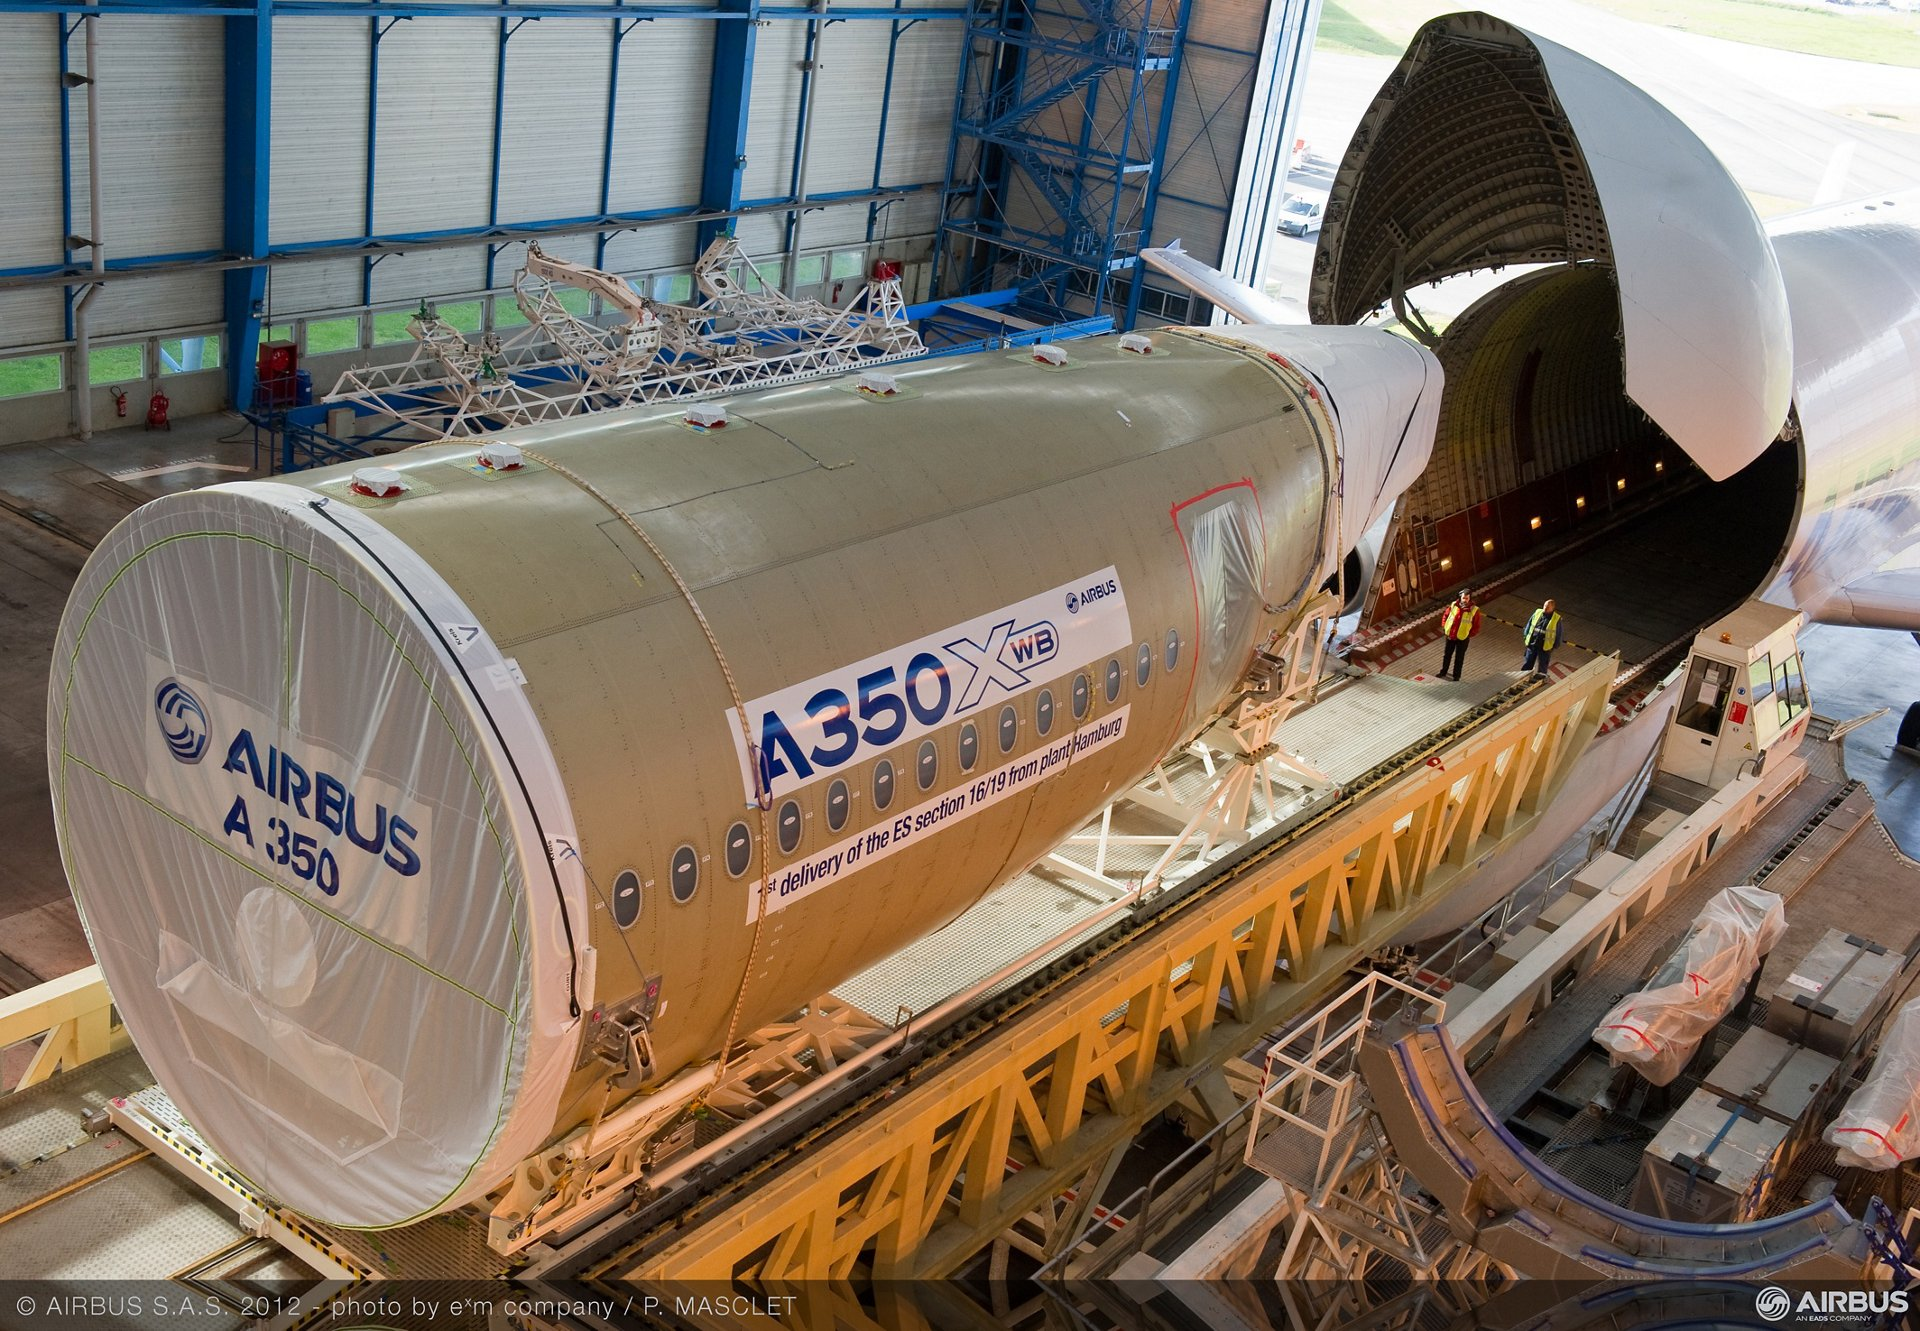 Airbus delivered the A350 XWB static test airframe's aft fuselage to the final assembly line in Toulouse, France, for assembly with the front and centre fuselage sections